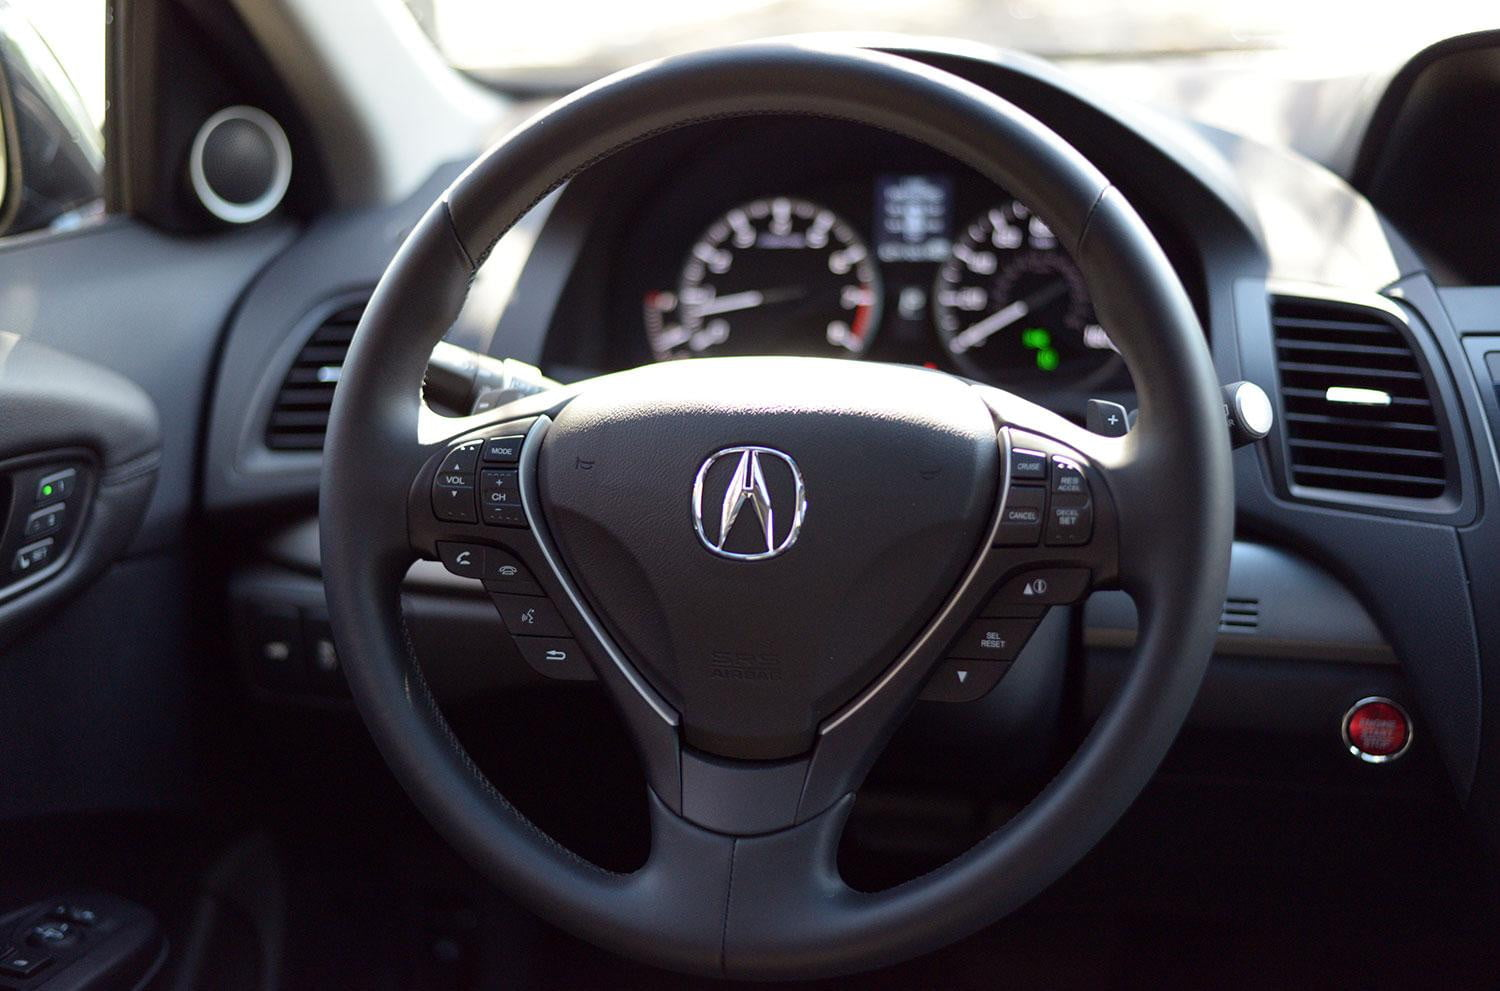 2016 Acura ILX Review : Price, Photos and Specs - Car Whoops